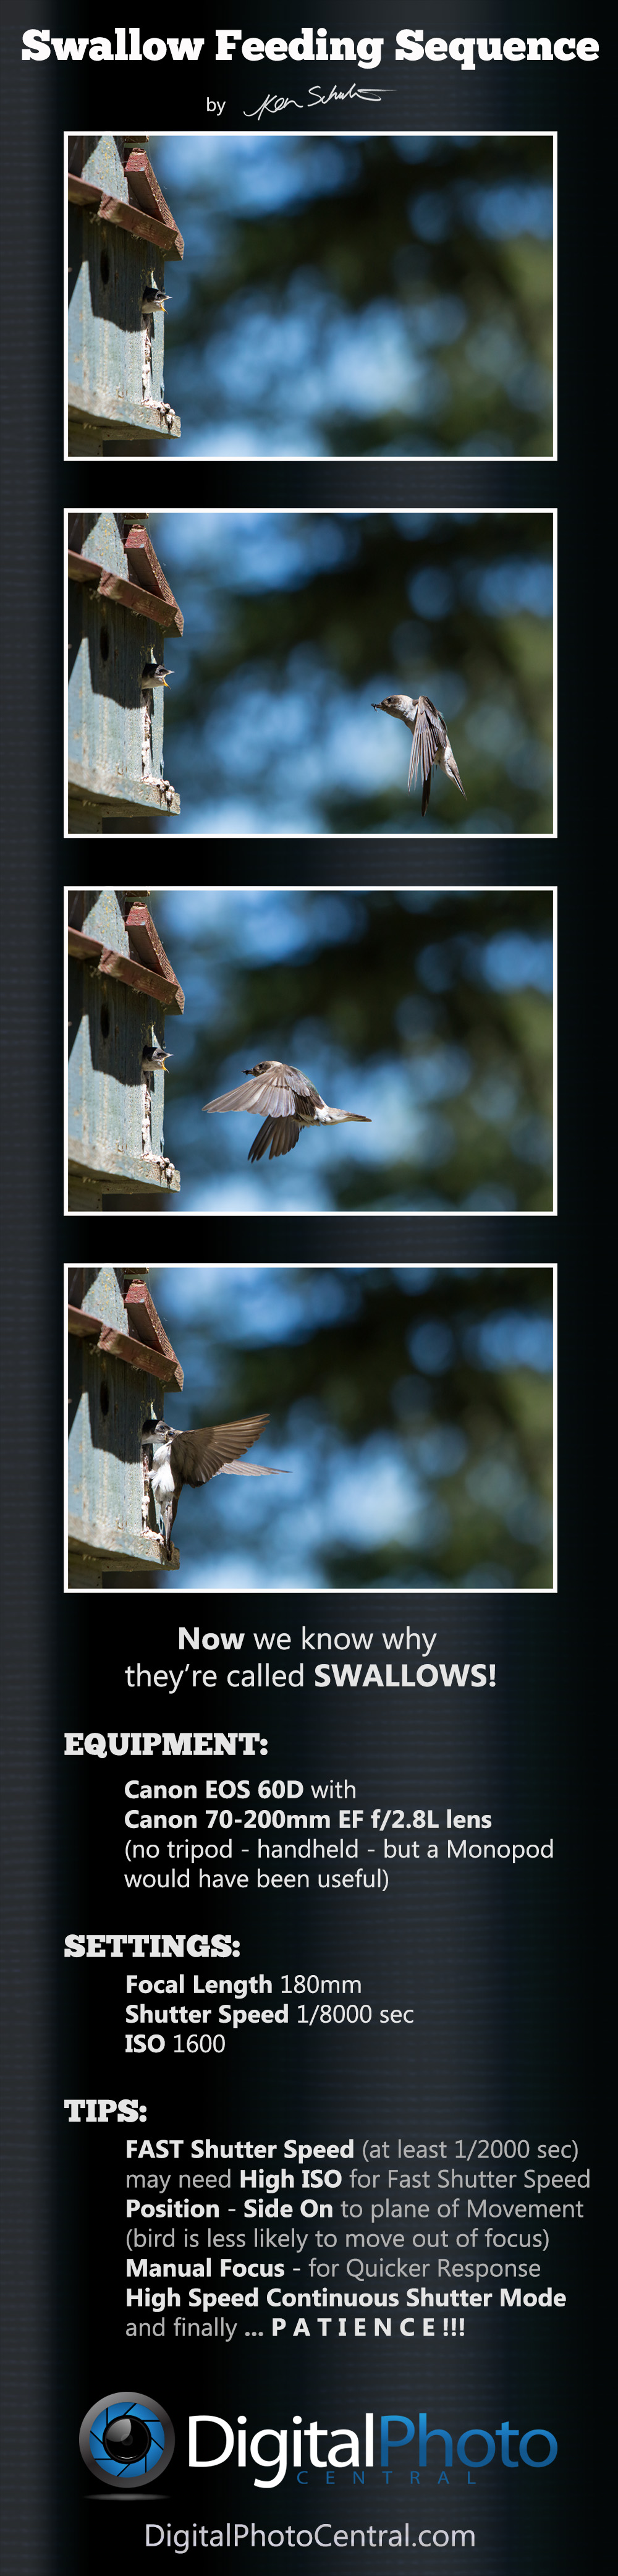 Swallow Feeding Sequence